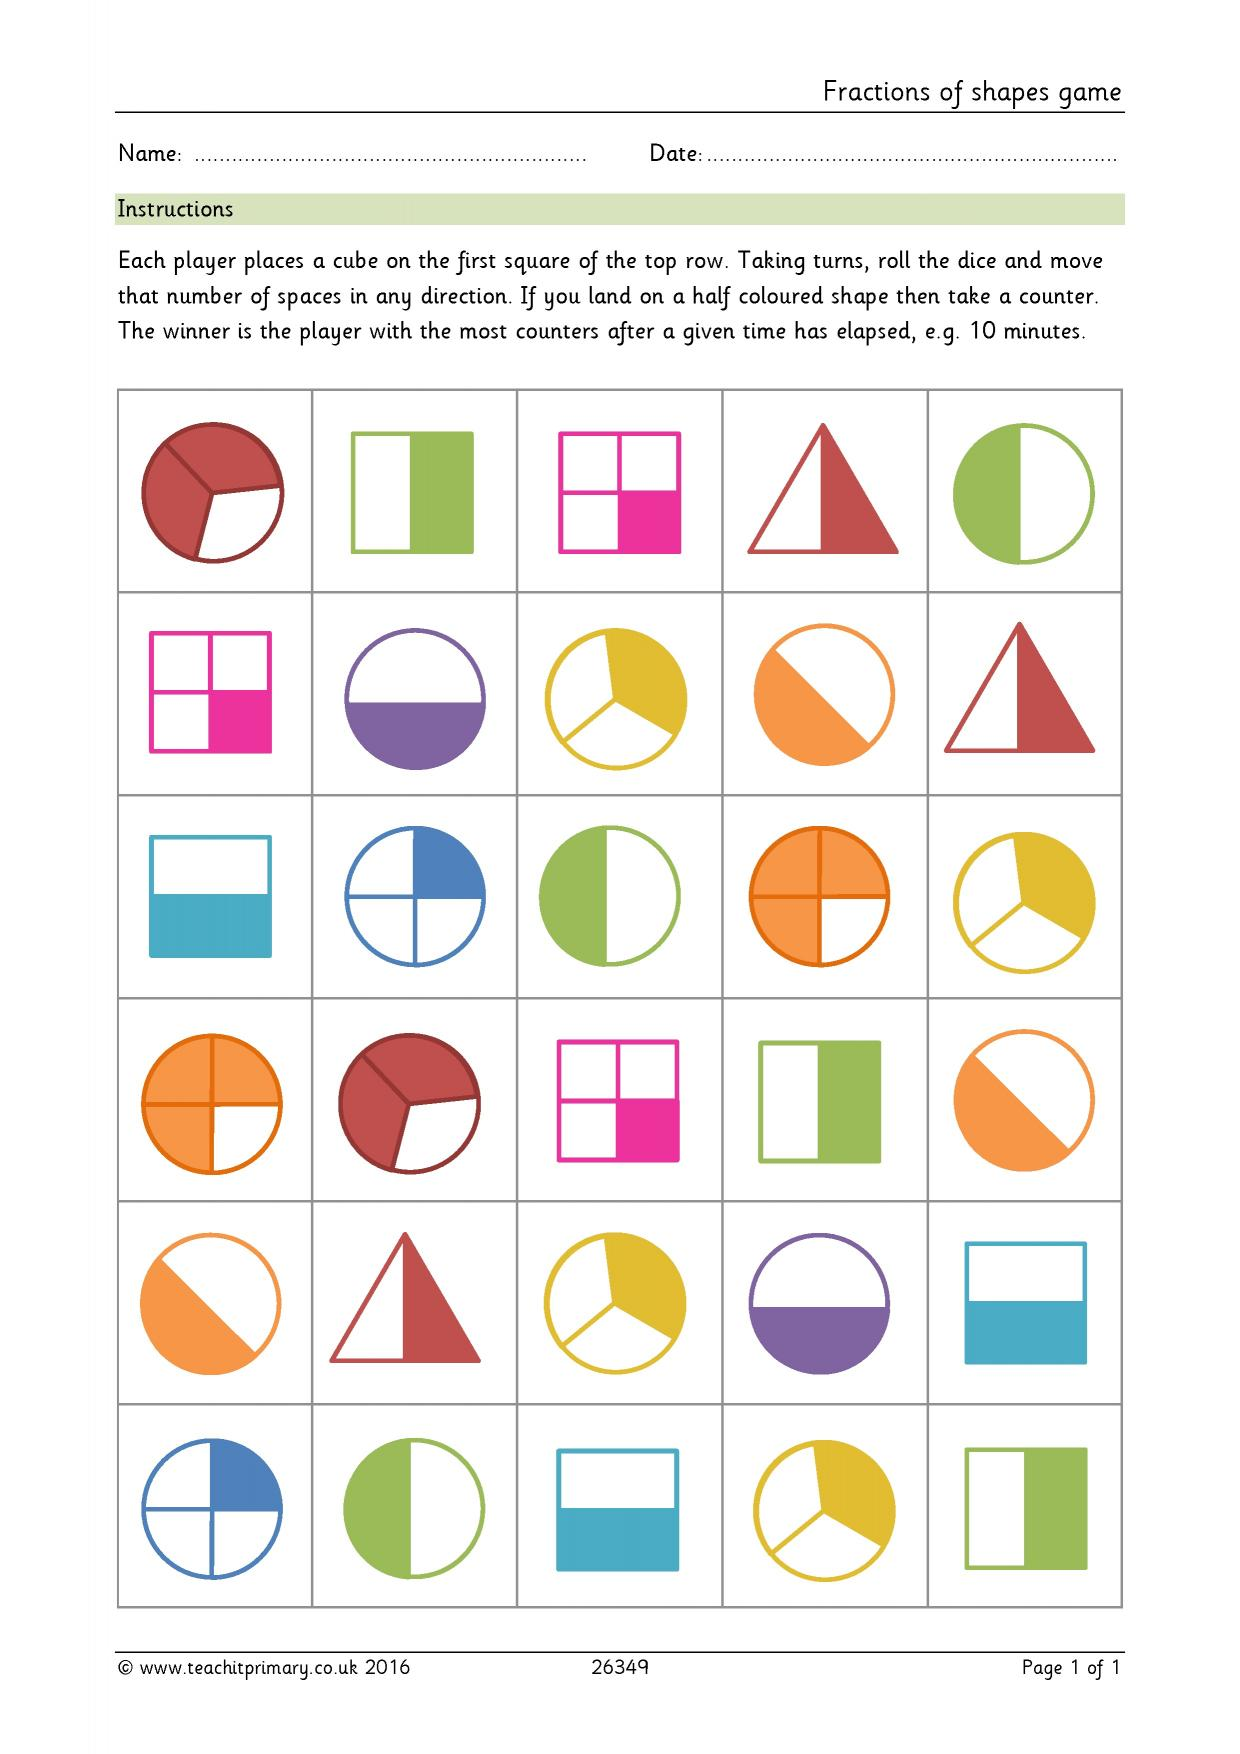 Fraction Worksheet 1 K5 Learning